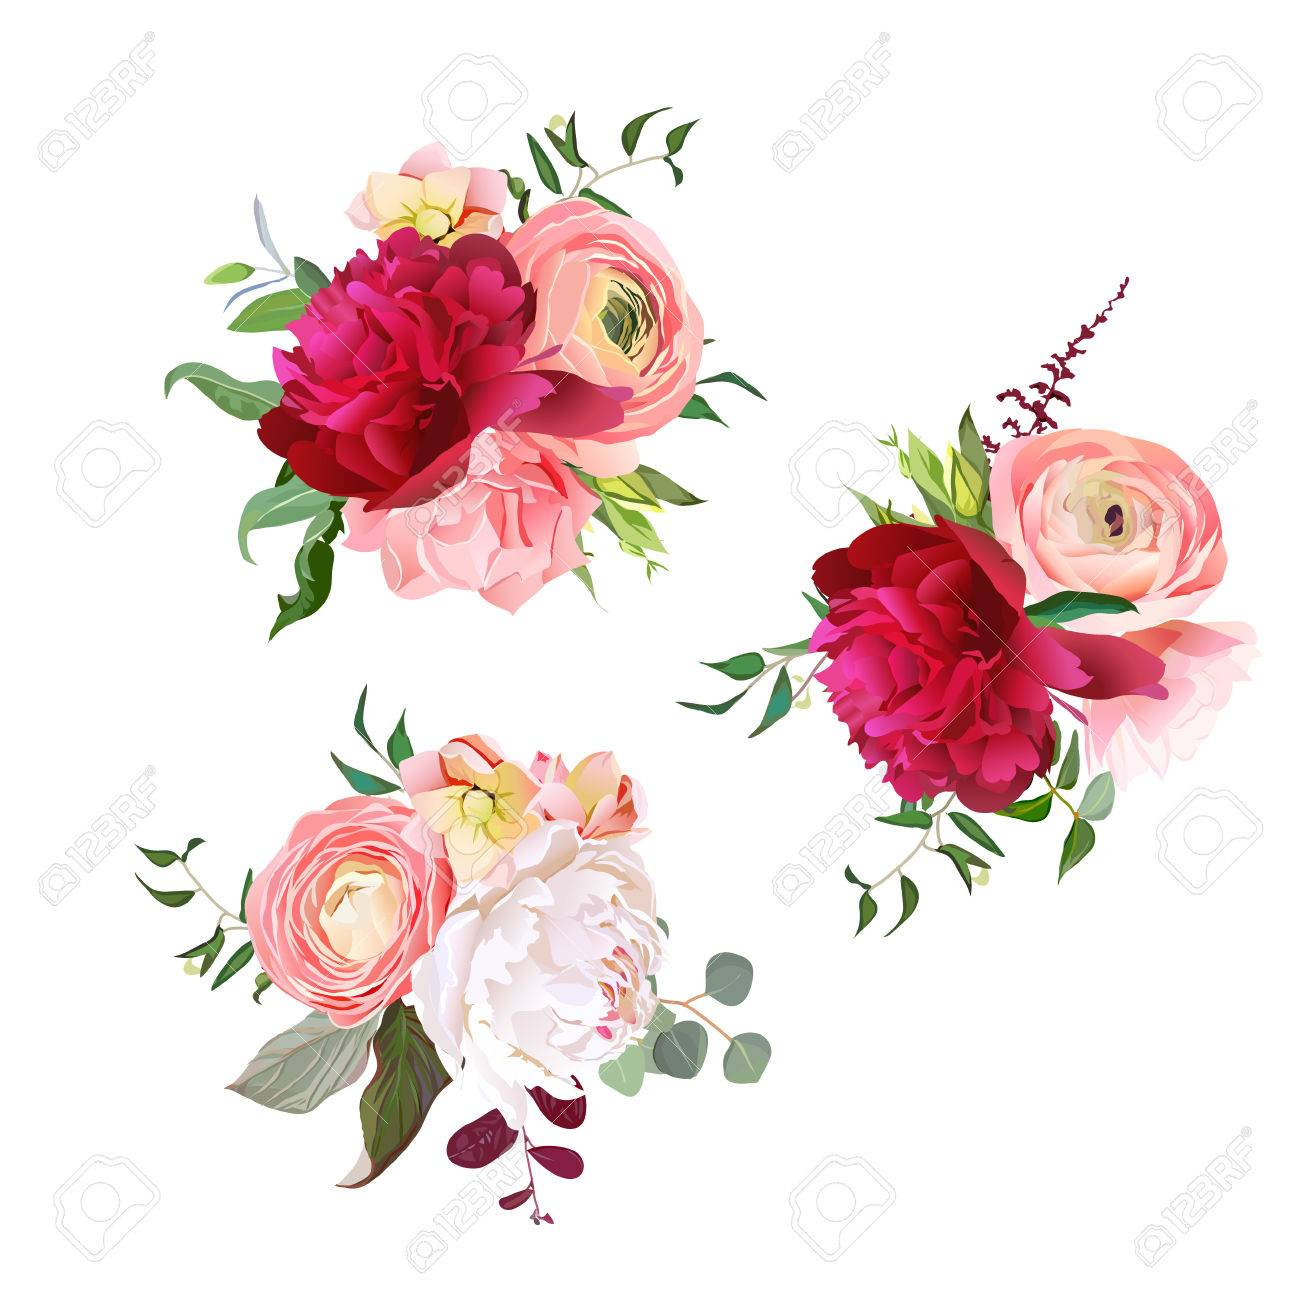 4b7888a88a8c0 Gift bouquets of rose, peony, ranunculus, carnation and eucalyptus leaves.  Romantic surprise